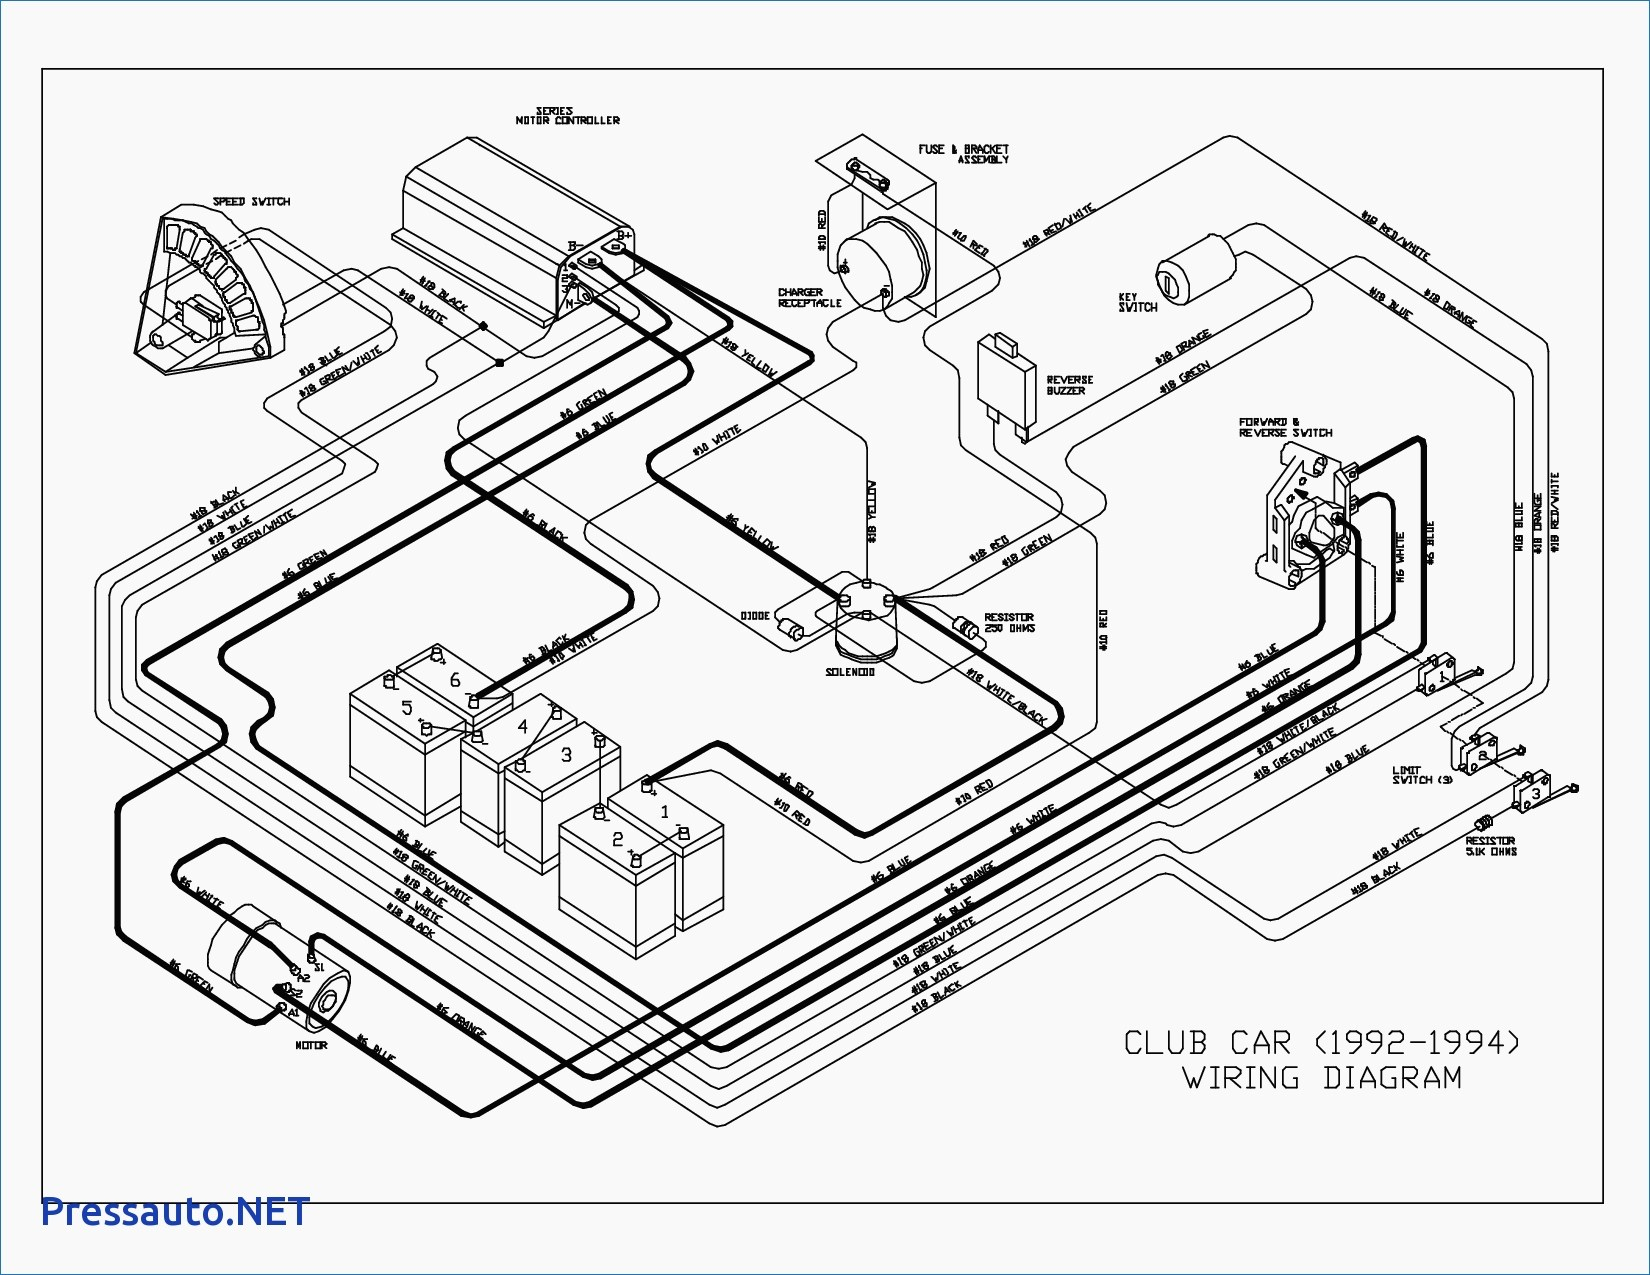 Battery Wiring For 2002 Club Car - Wiring Diagram Data - Club Car Wiring Diagram